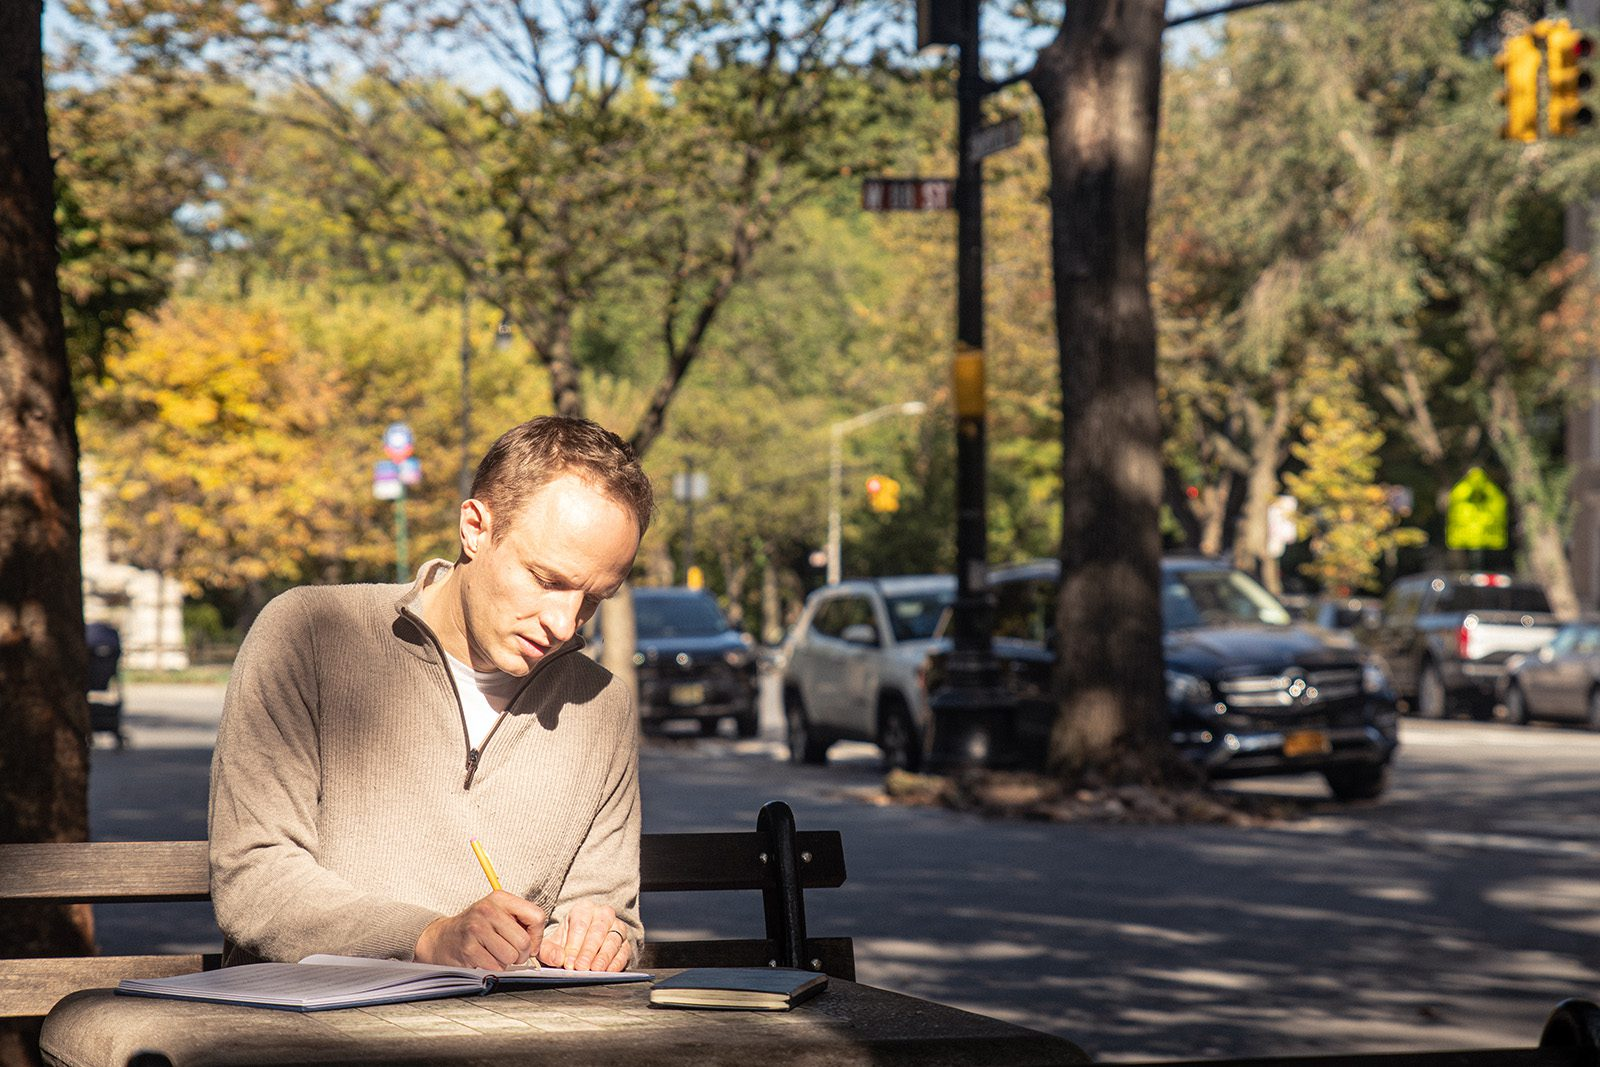 Aron Accurso '01, who is also a composer of musical theater and choral music, works near his home in New York City.